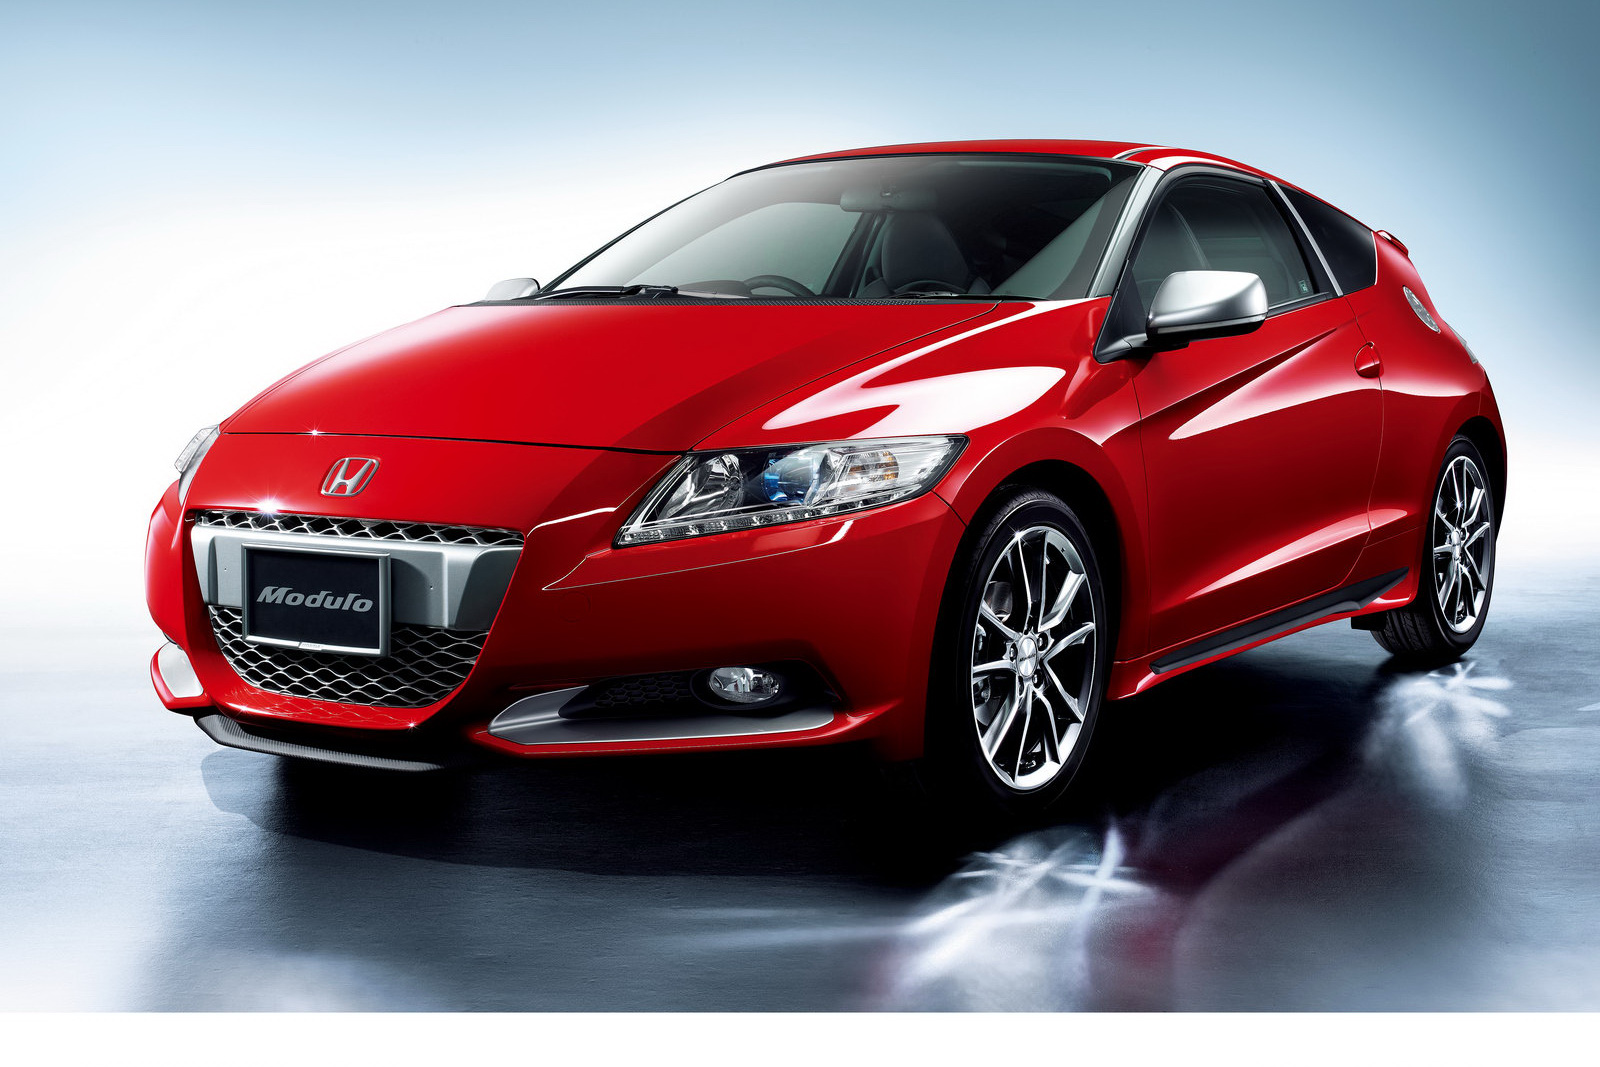 Honda crz photo - 5